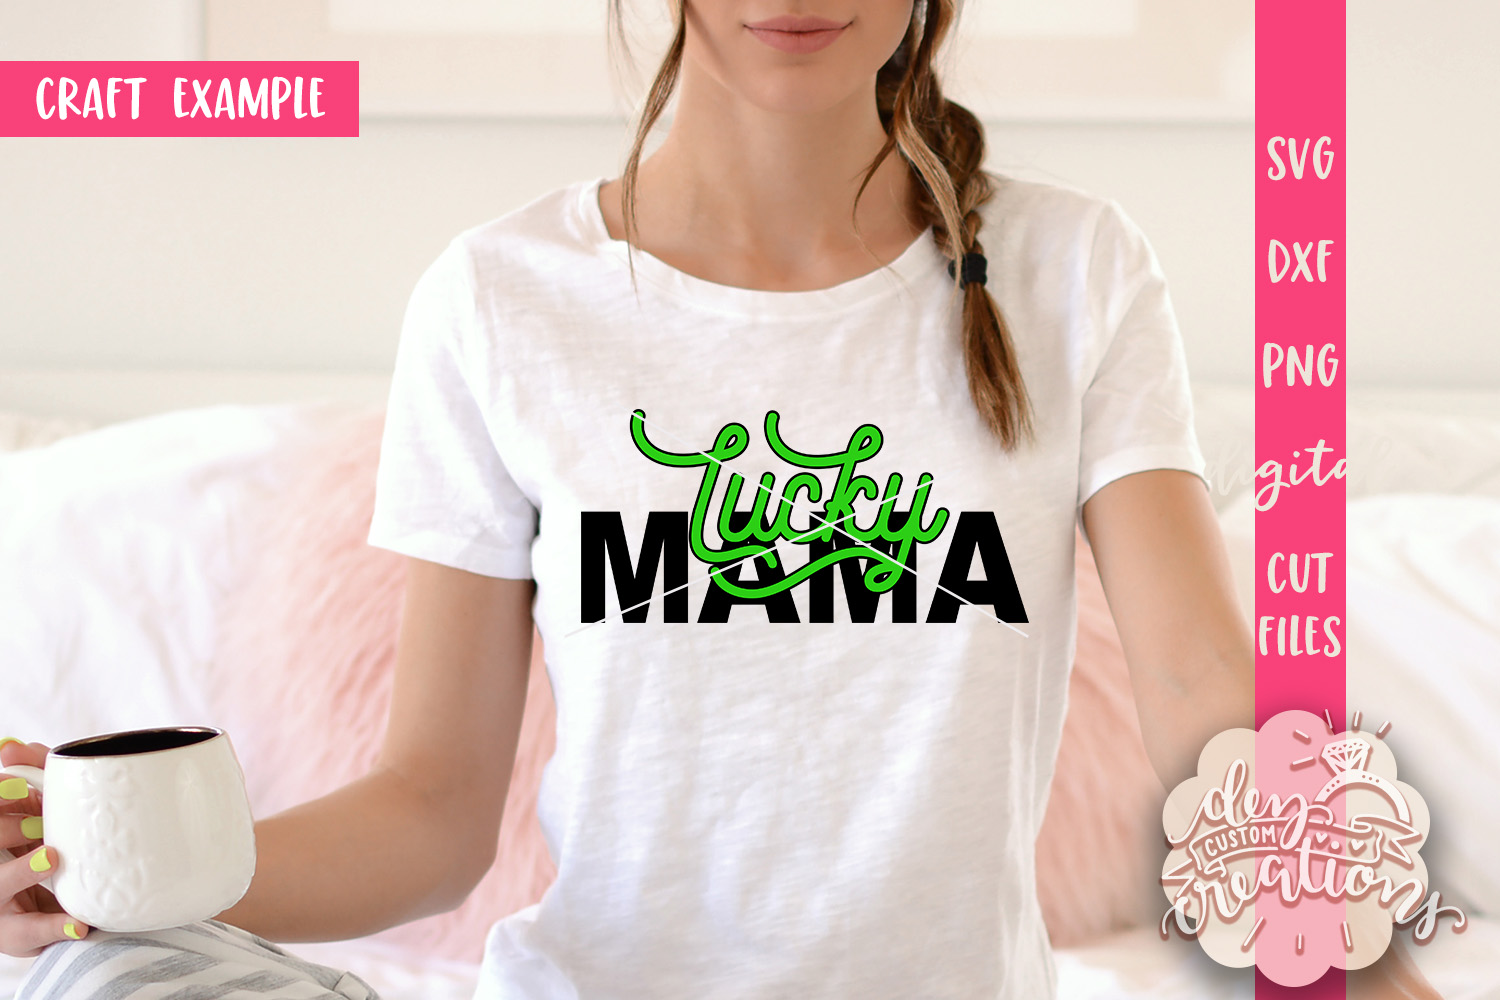 Lucky Mama - SVG DXF PNG Cut files & Clipart example image 2